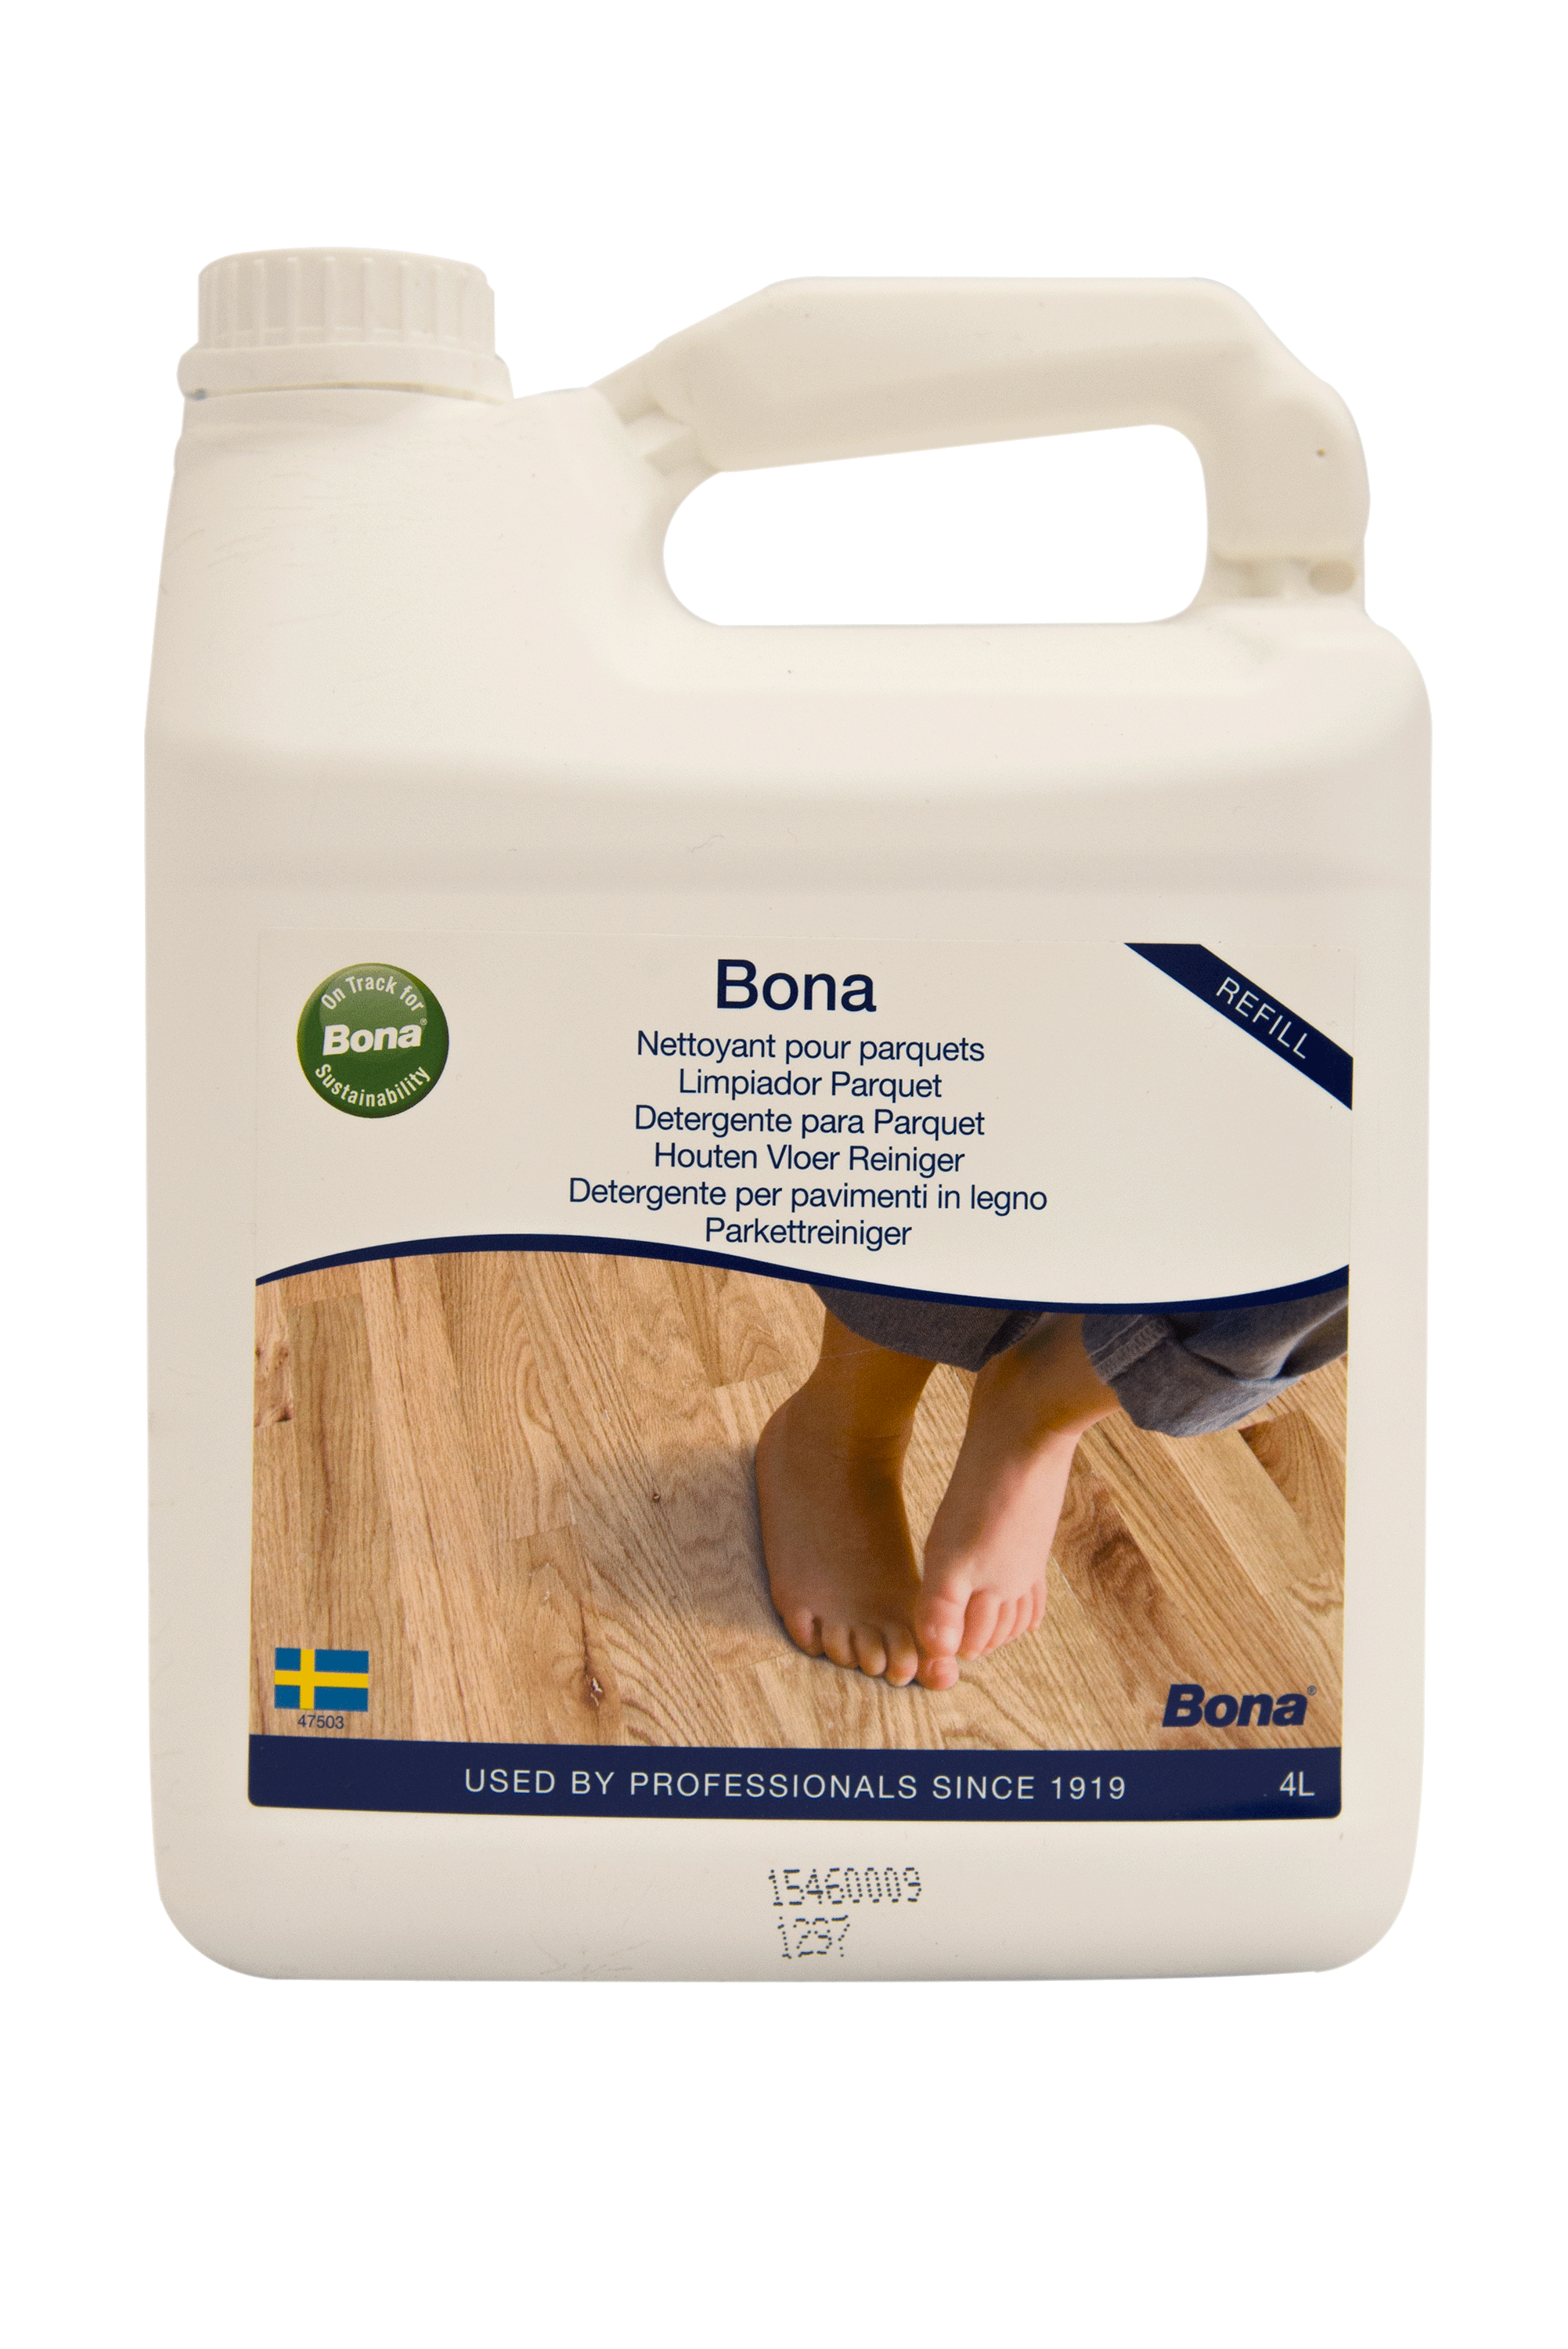 Refill Container For Bona Spray Mop - Bauwerk